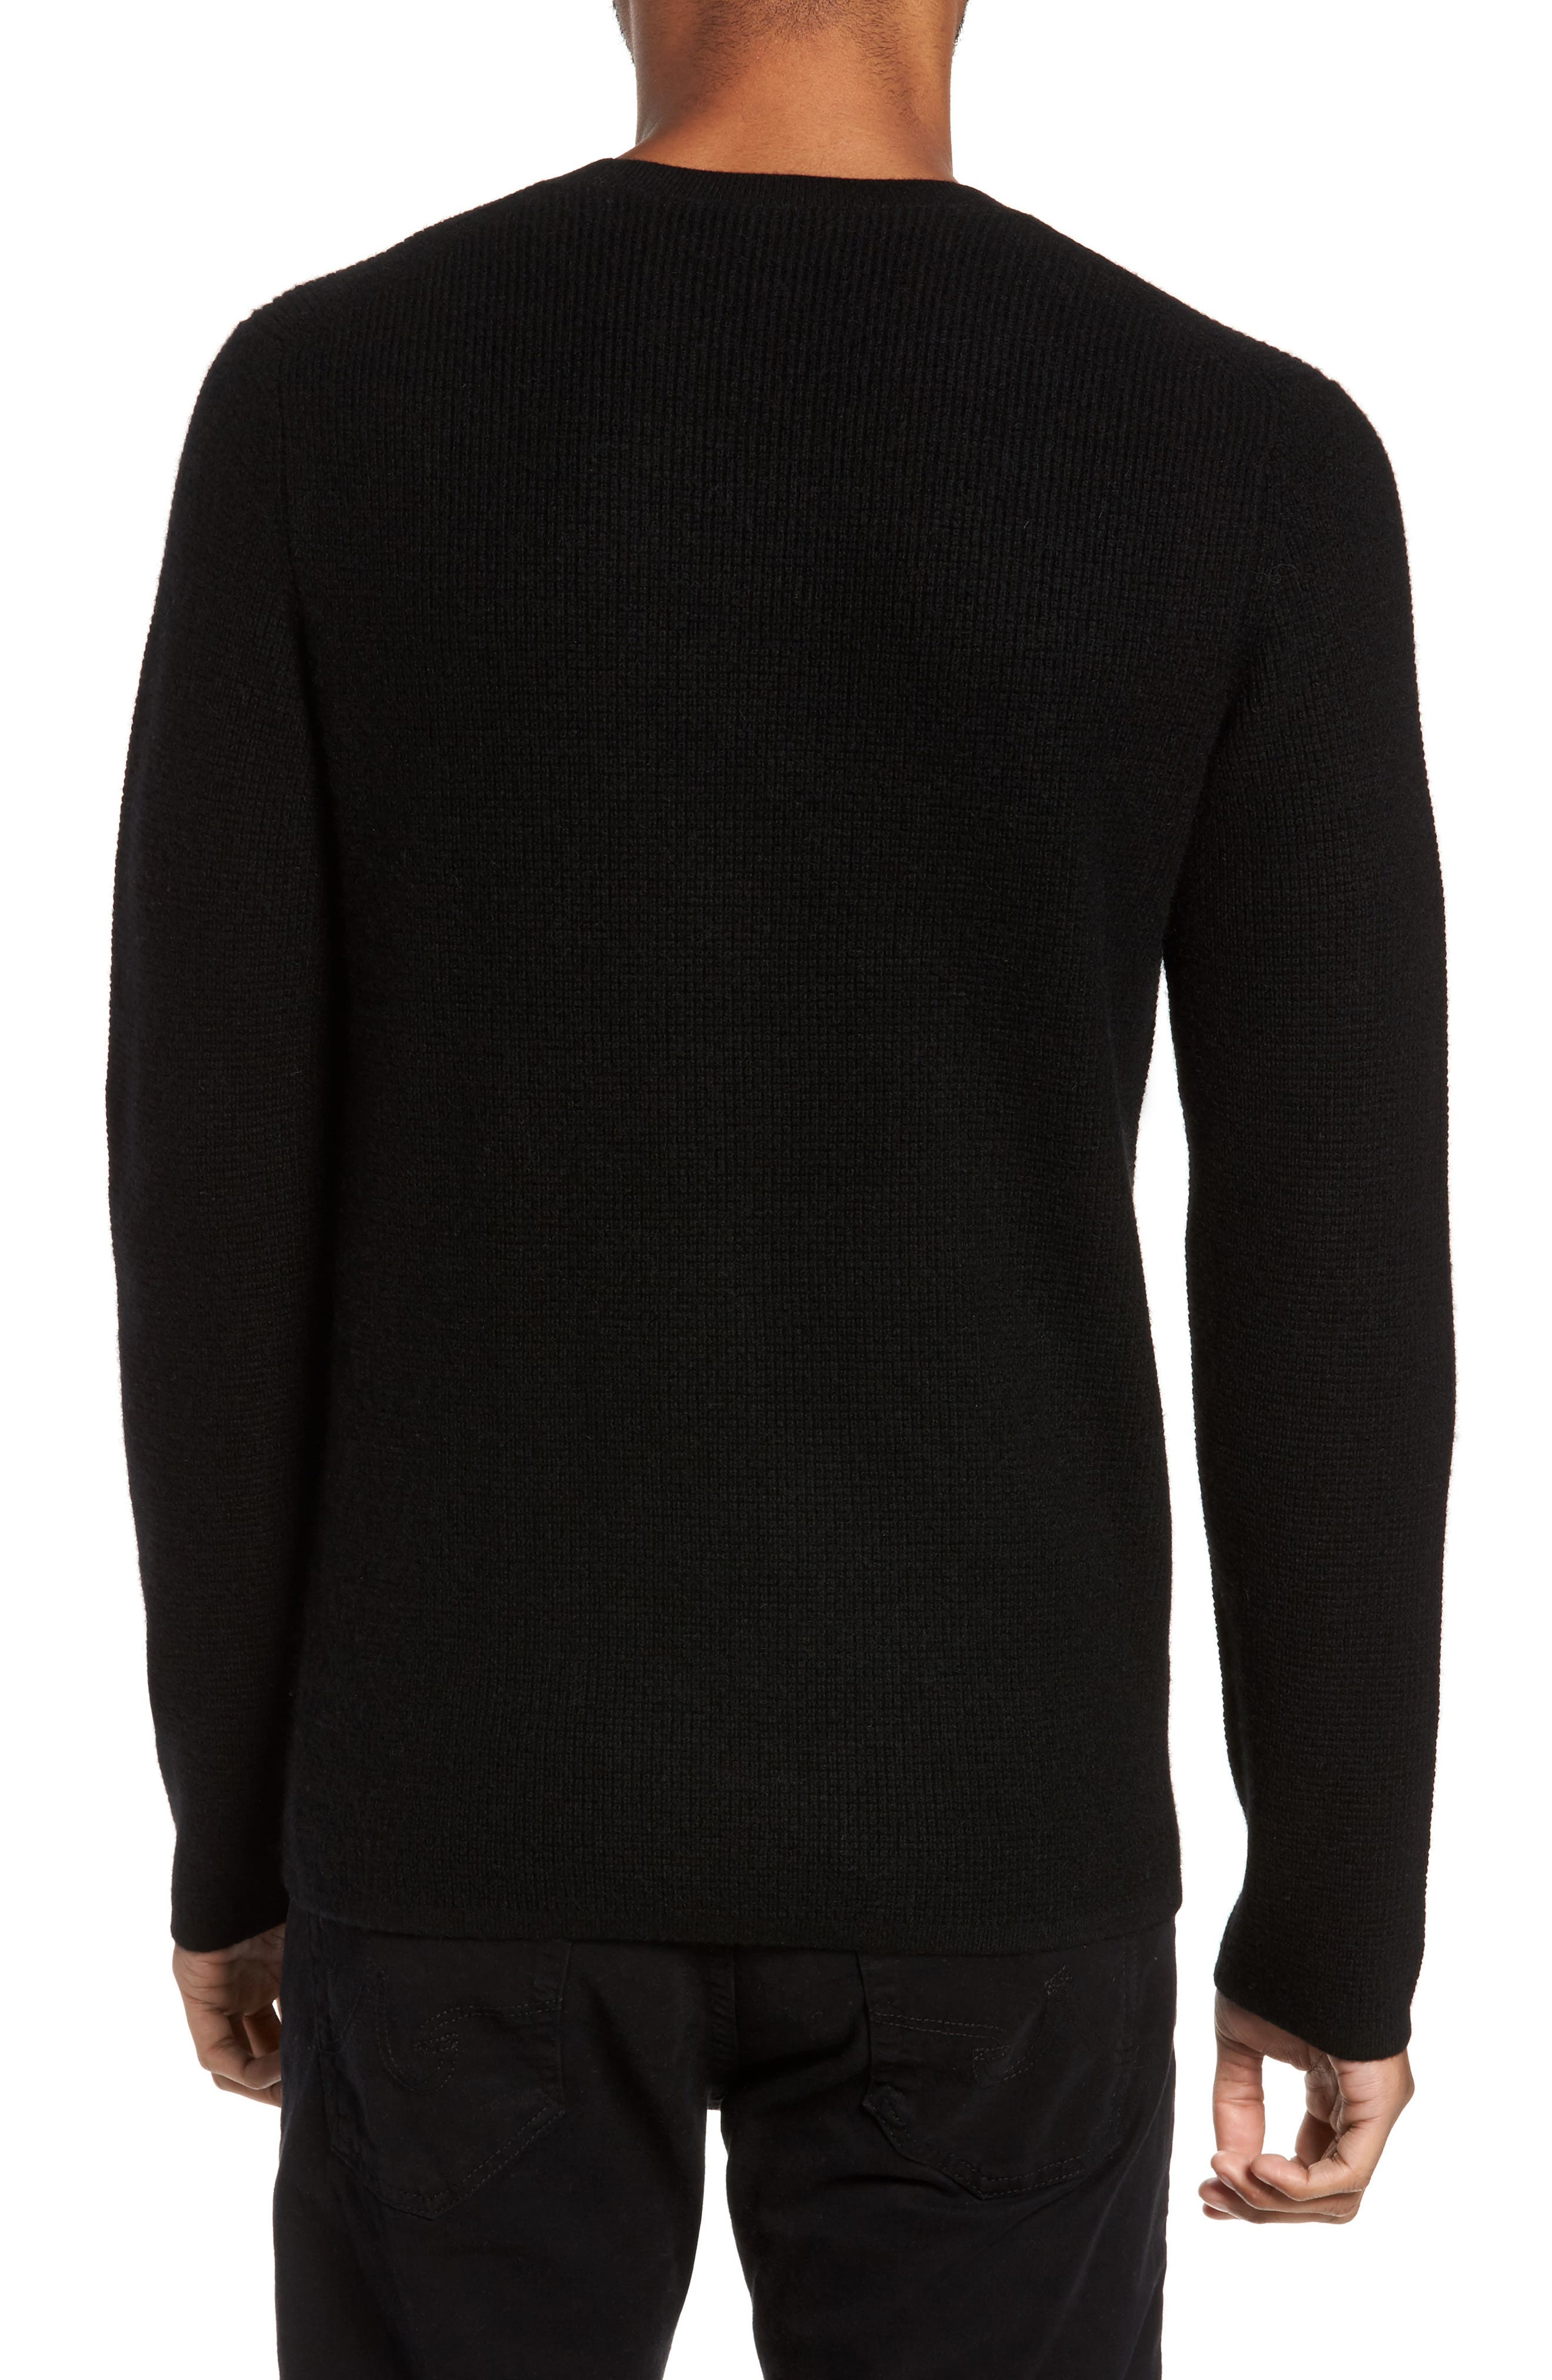 Thermal Wool & Cashmere Sweater,                             Alternate thumbnail 2, color,                             Black